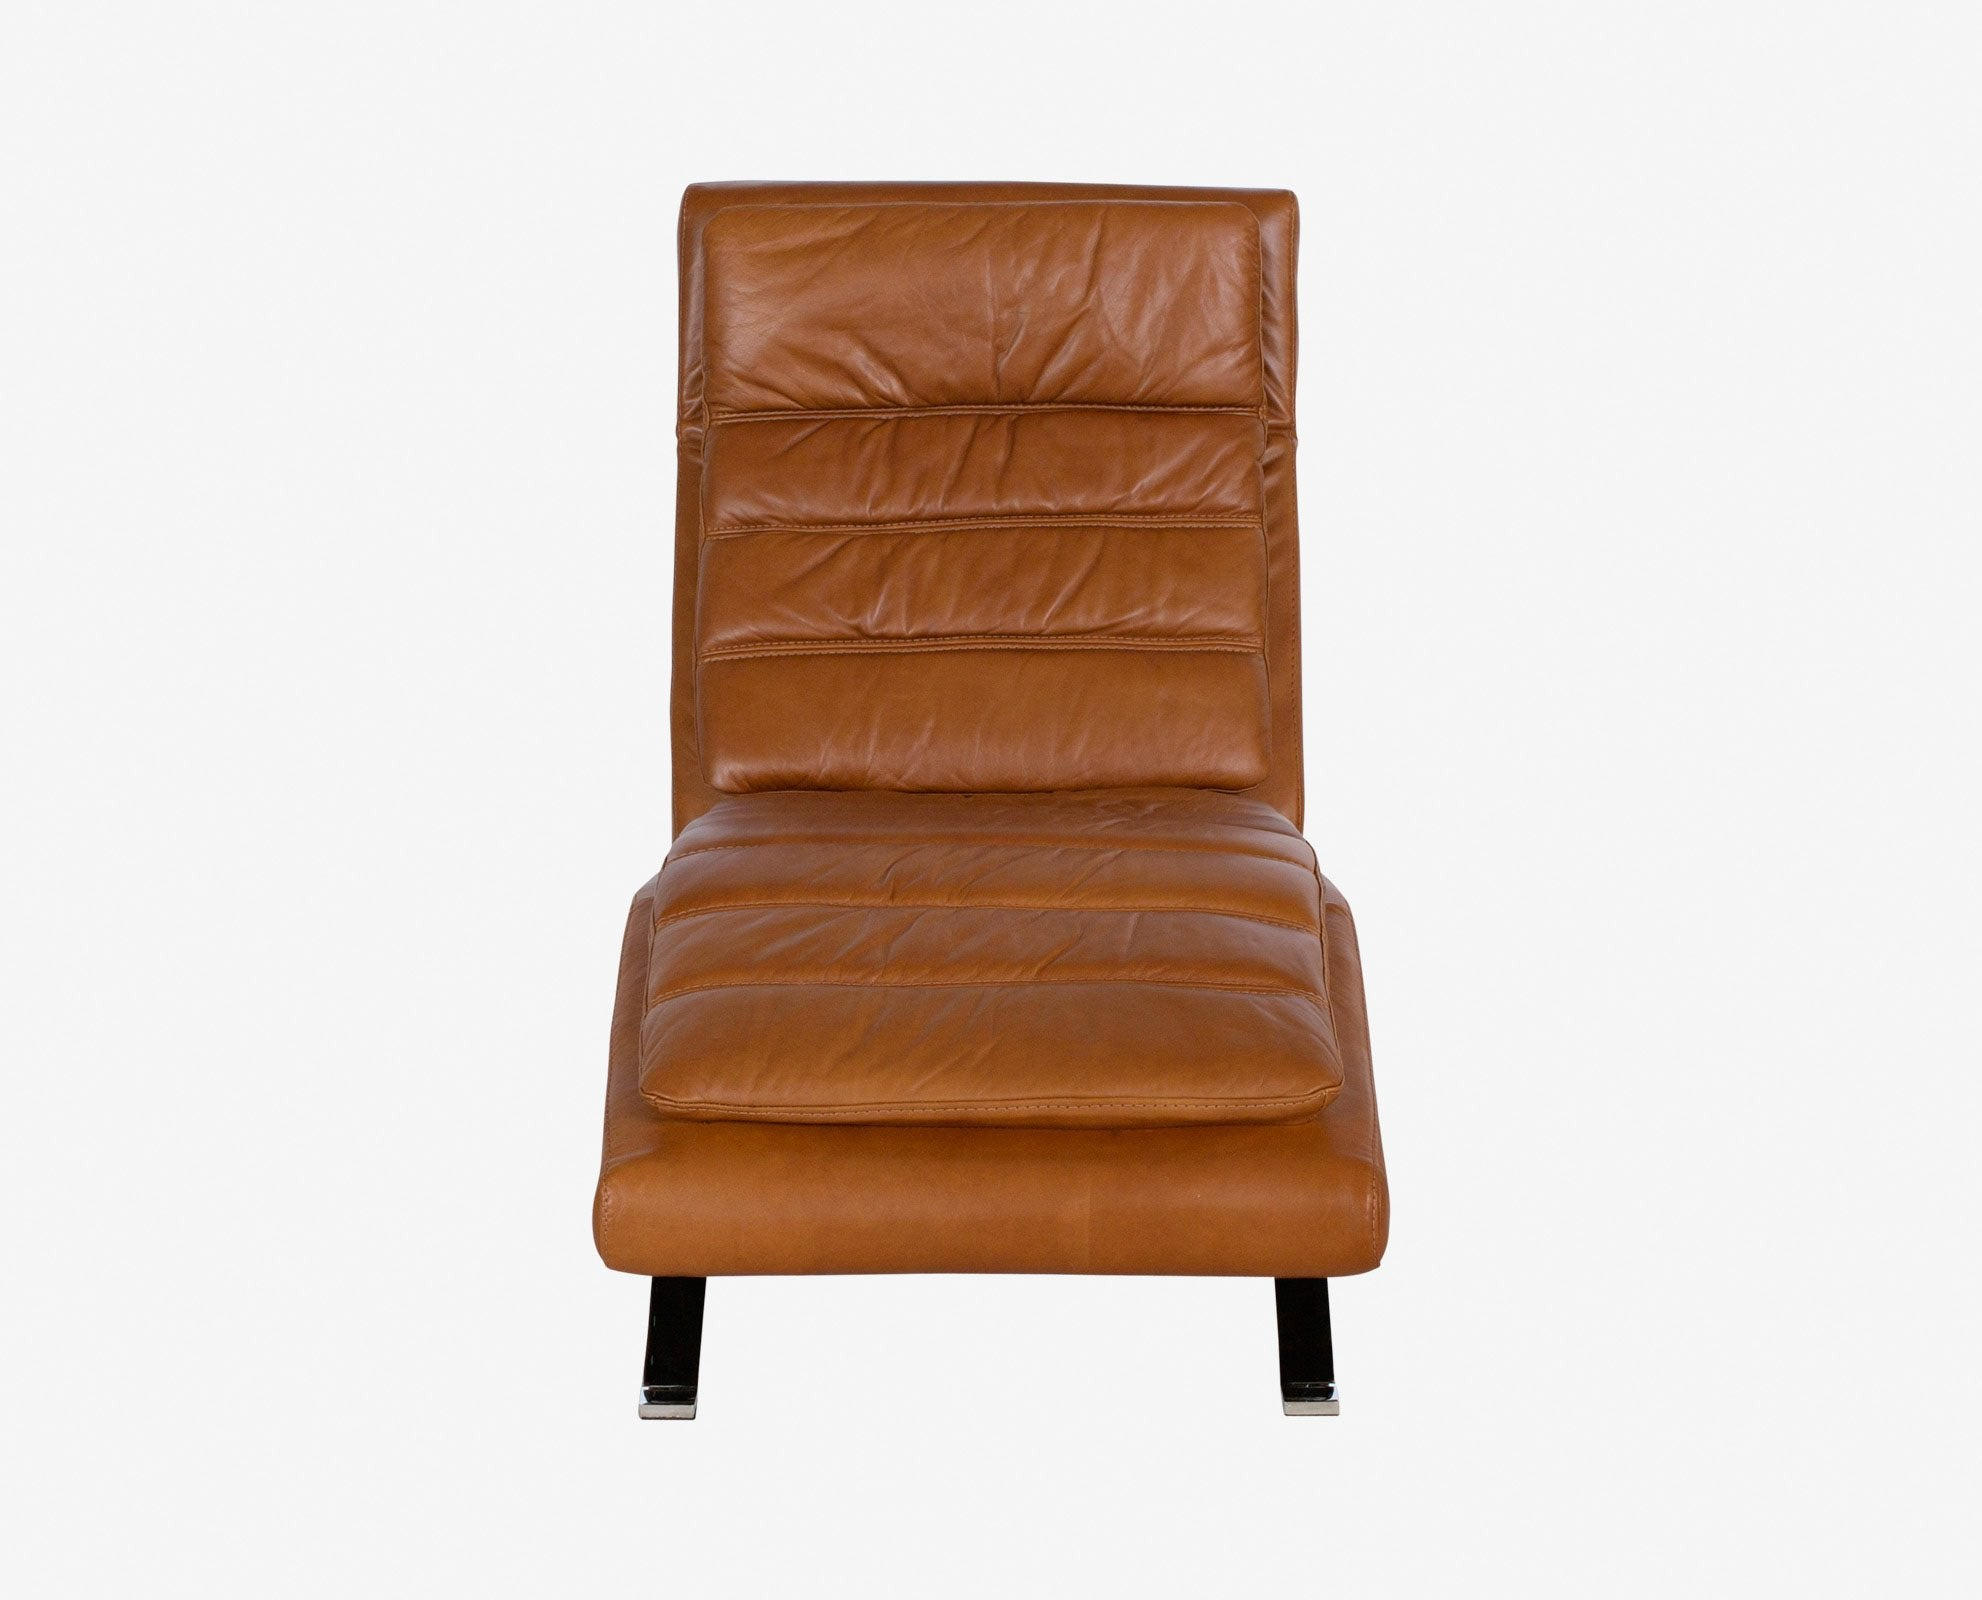 Scandinavian design luxury leather recliner